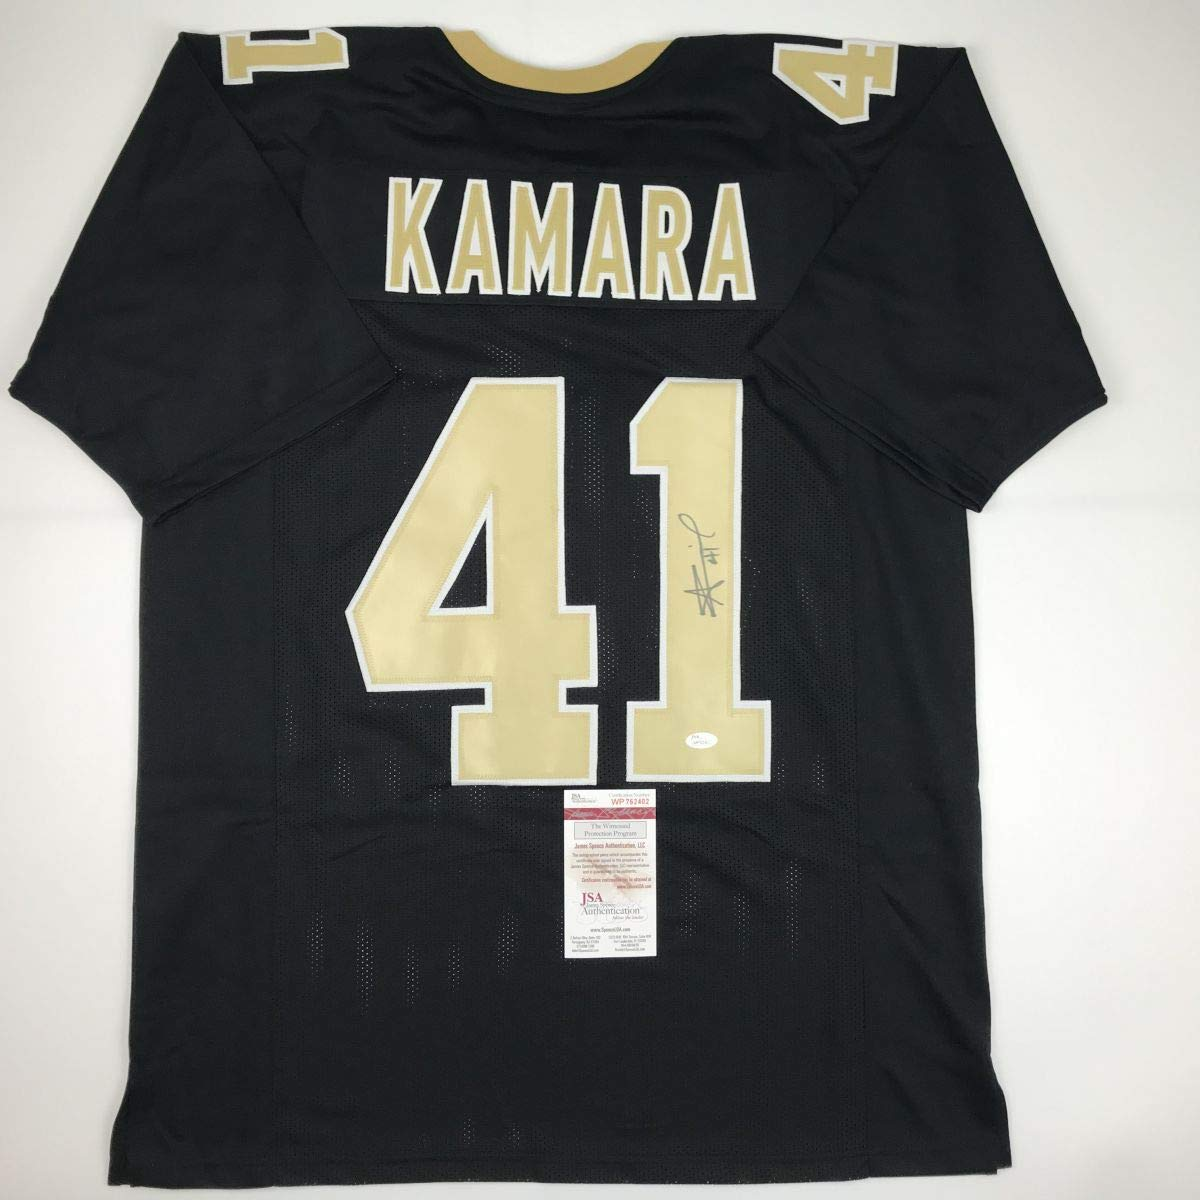 8ca2001f Autographed/Signed Alvin Kamara New Orleans Black Football Jersey JSA COA  at Amazon's Sports Collectibles Store